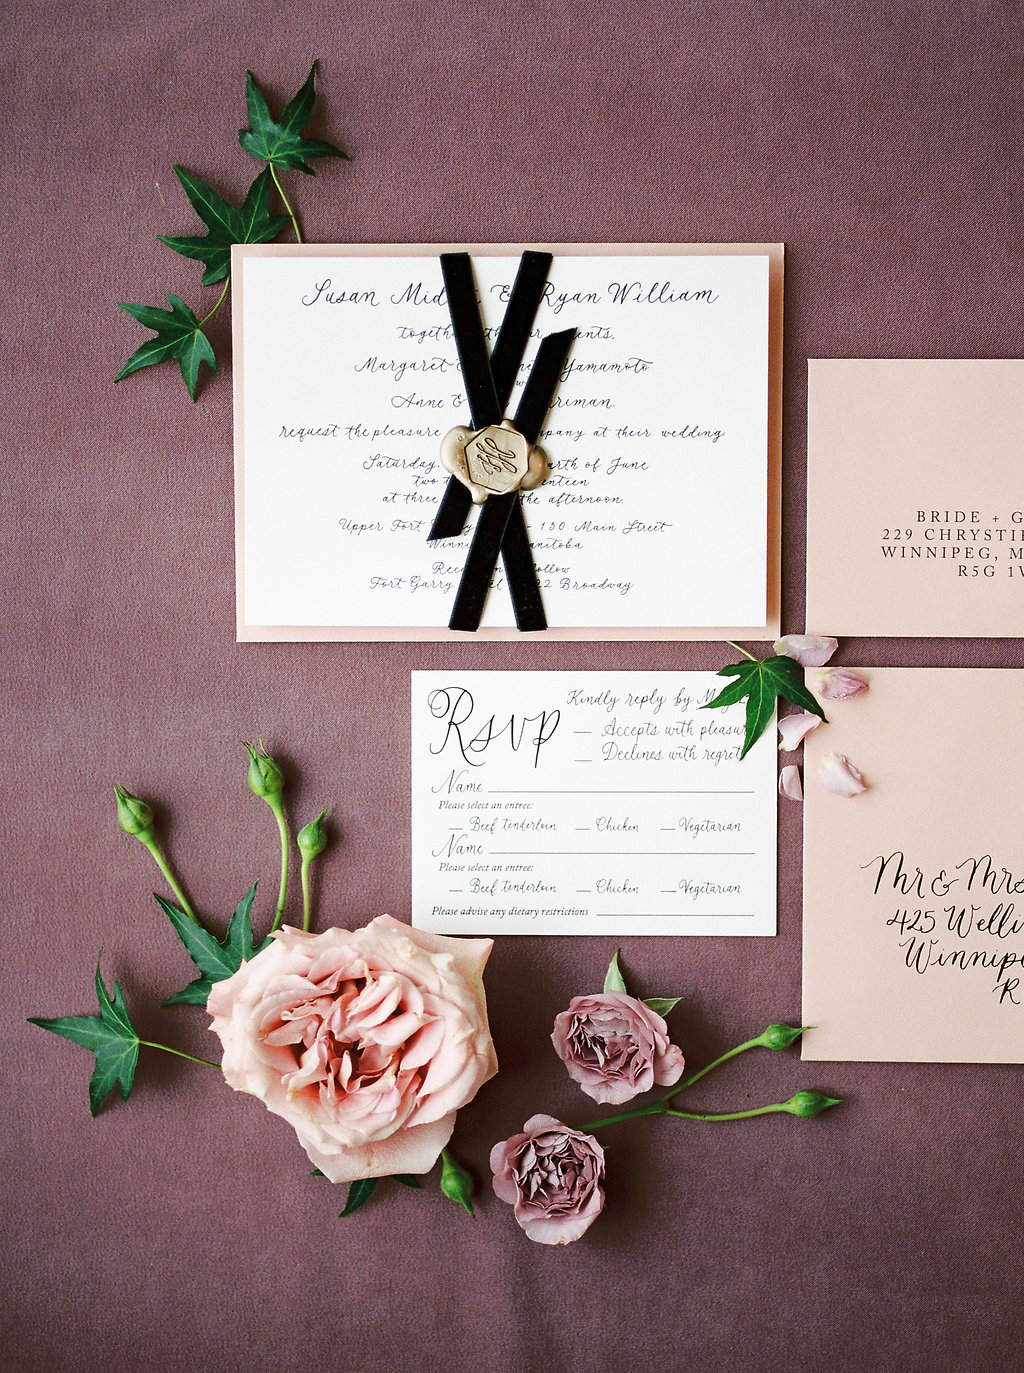 White Tail Meadow Editorial with calligraphy by Jennifer Bianca Calligraphy